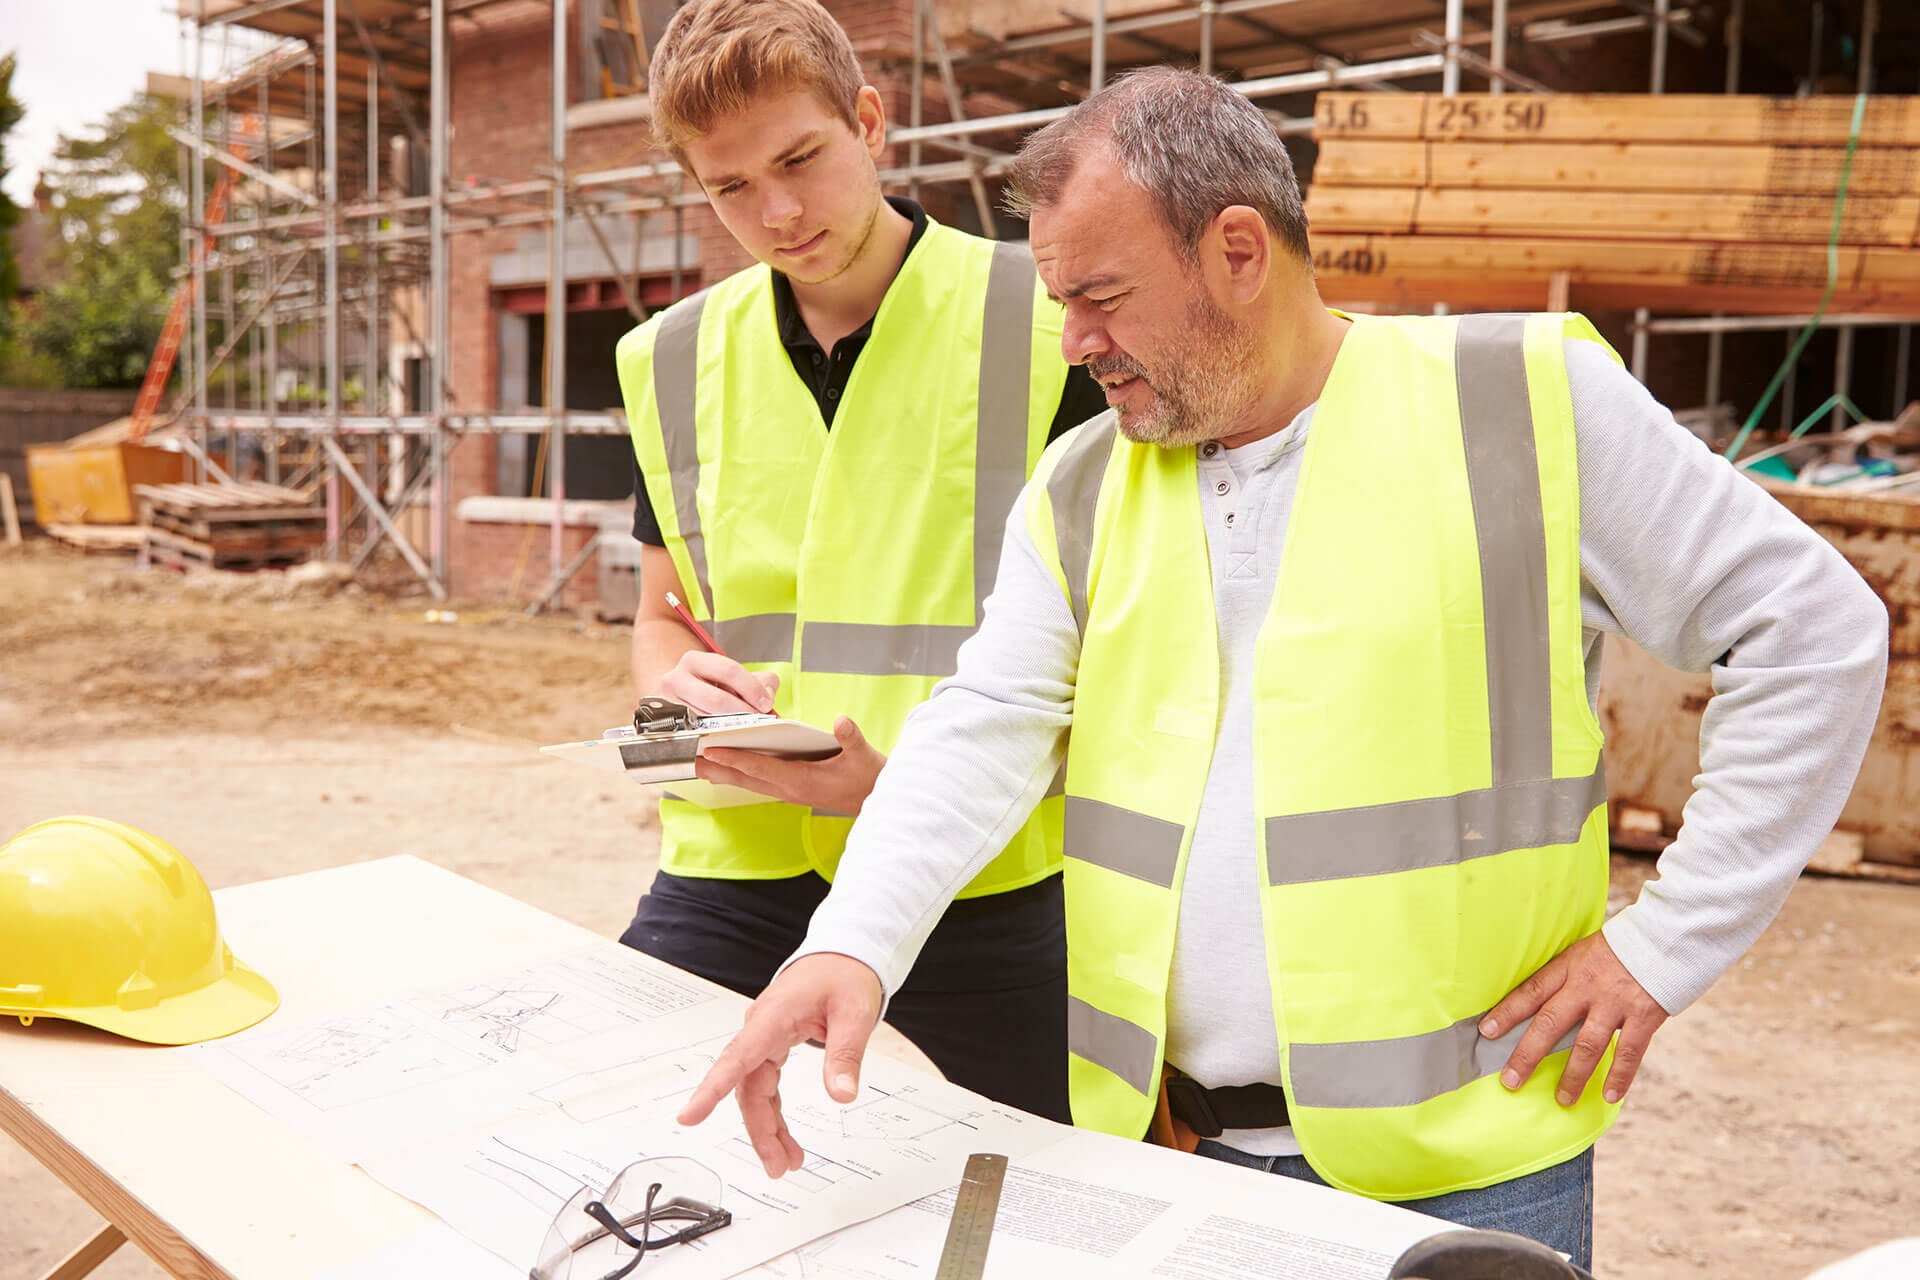 Government incentives make it easier for business to hire and train apprentices.